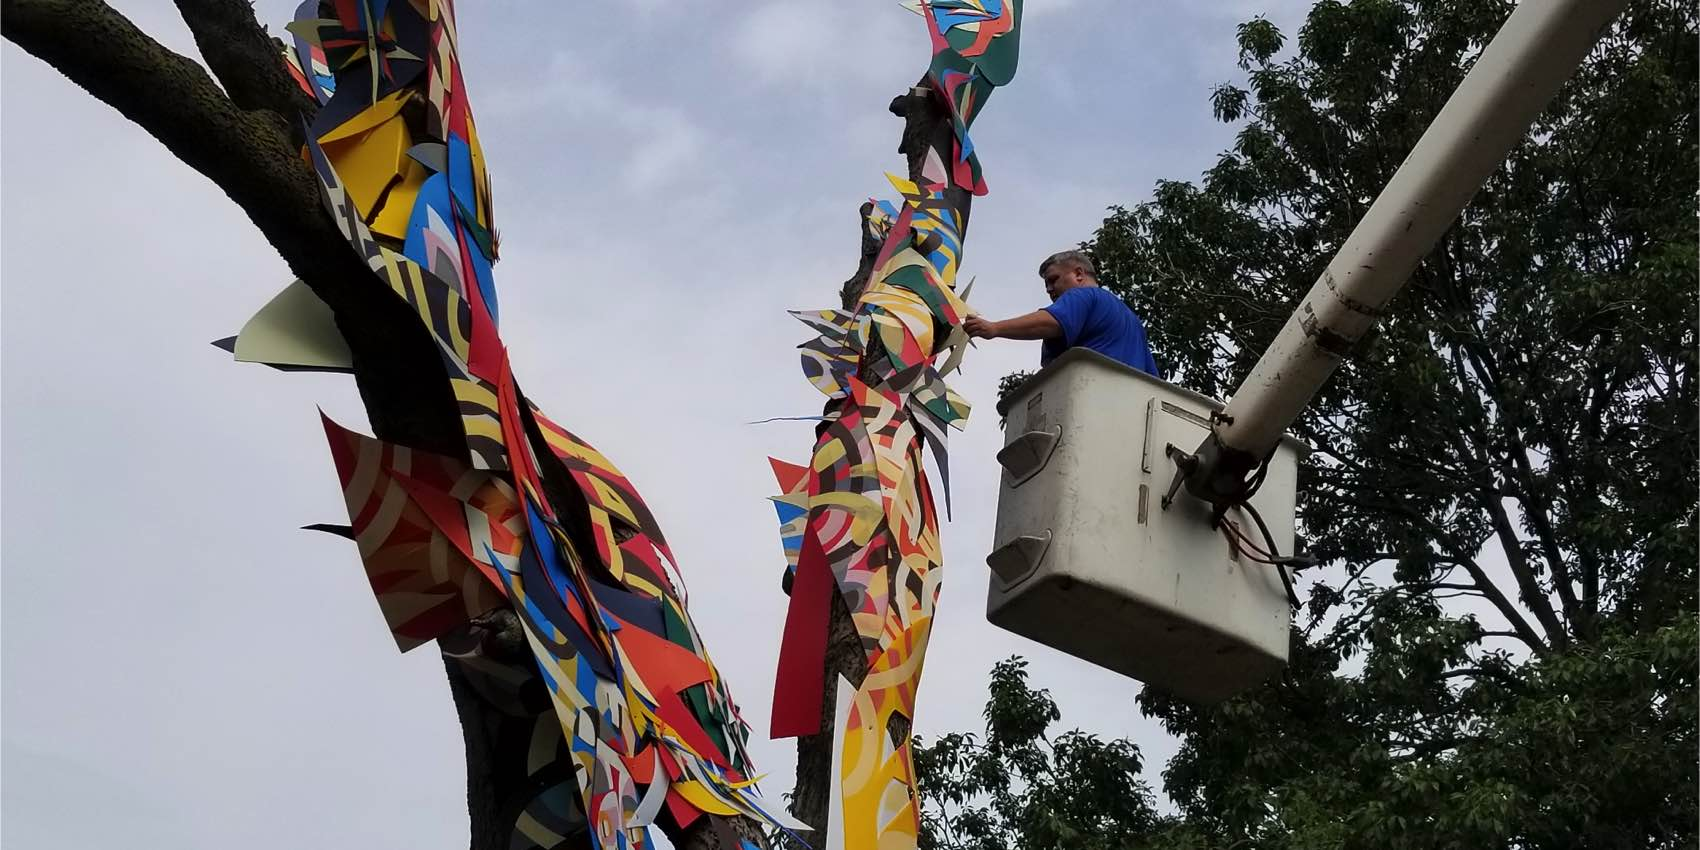 Public Worker Decorates a Tree With Colorful Paper Patterns